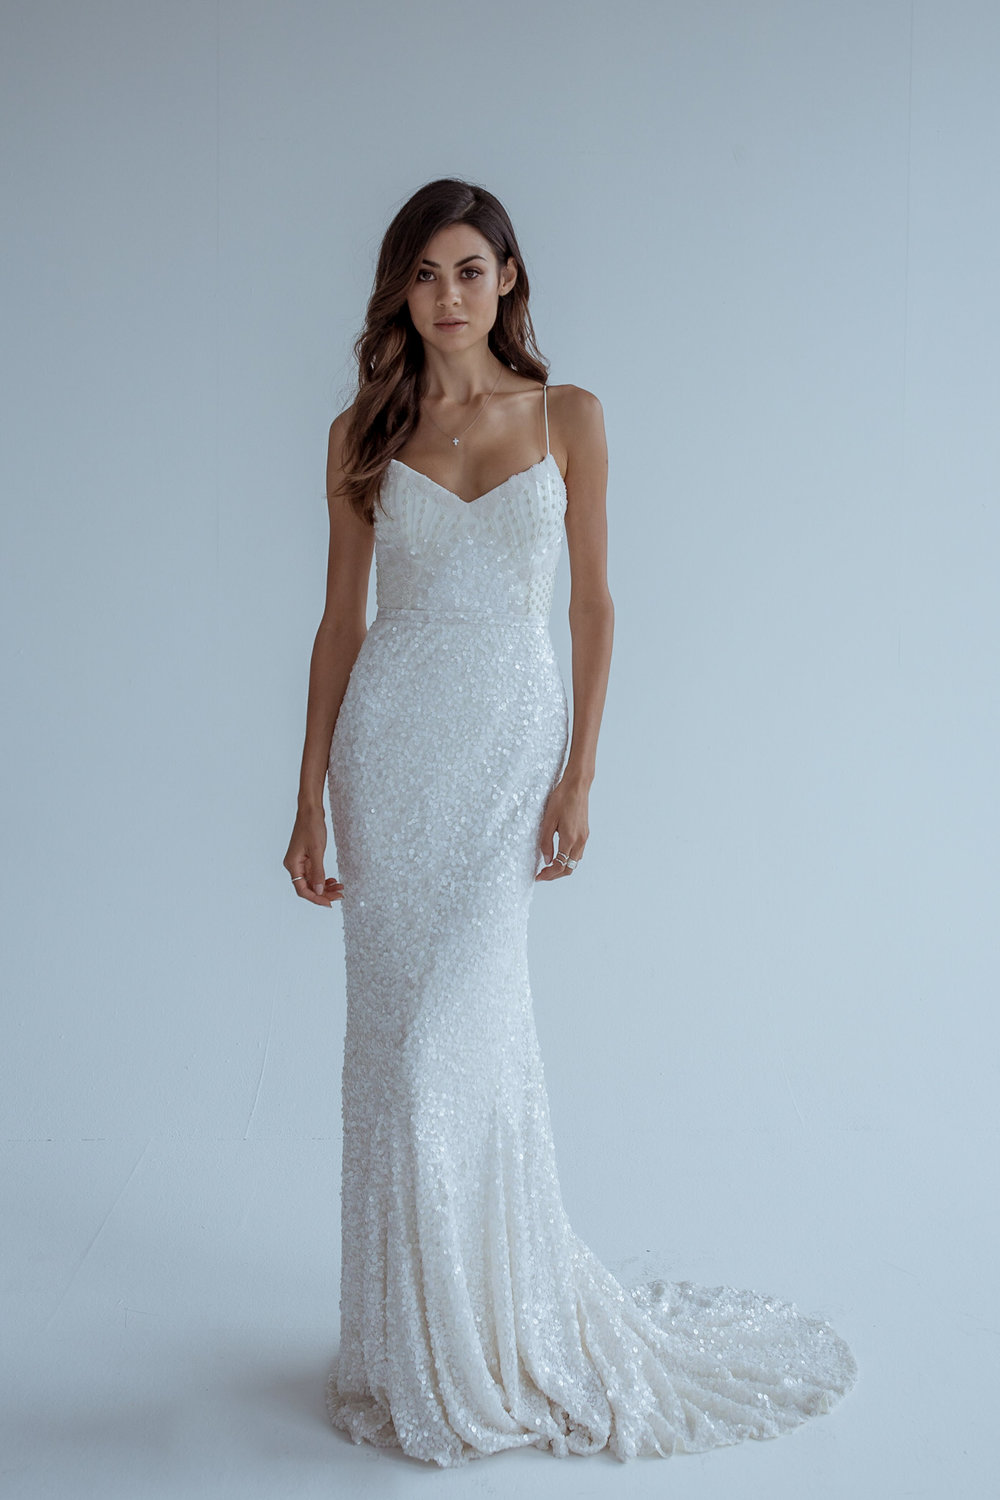 BRIDE // Wedding Dresses Under $3,000 — Love Find Co.